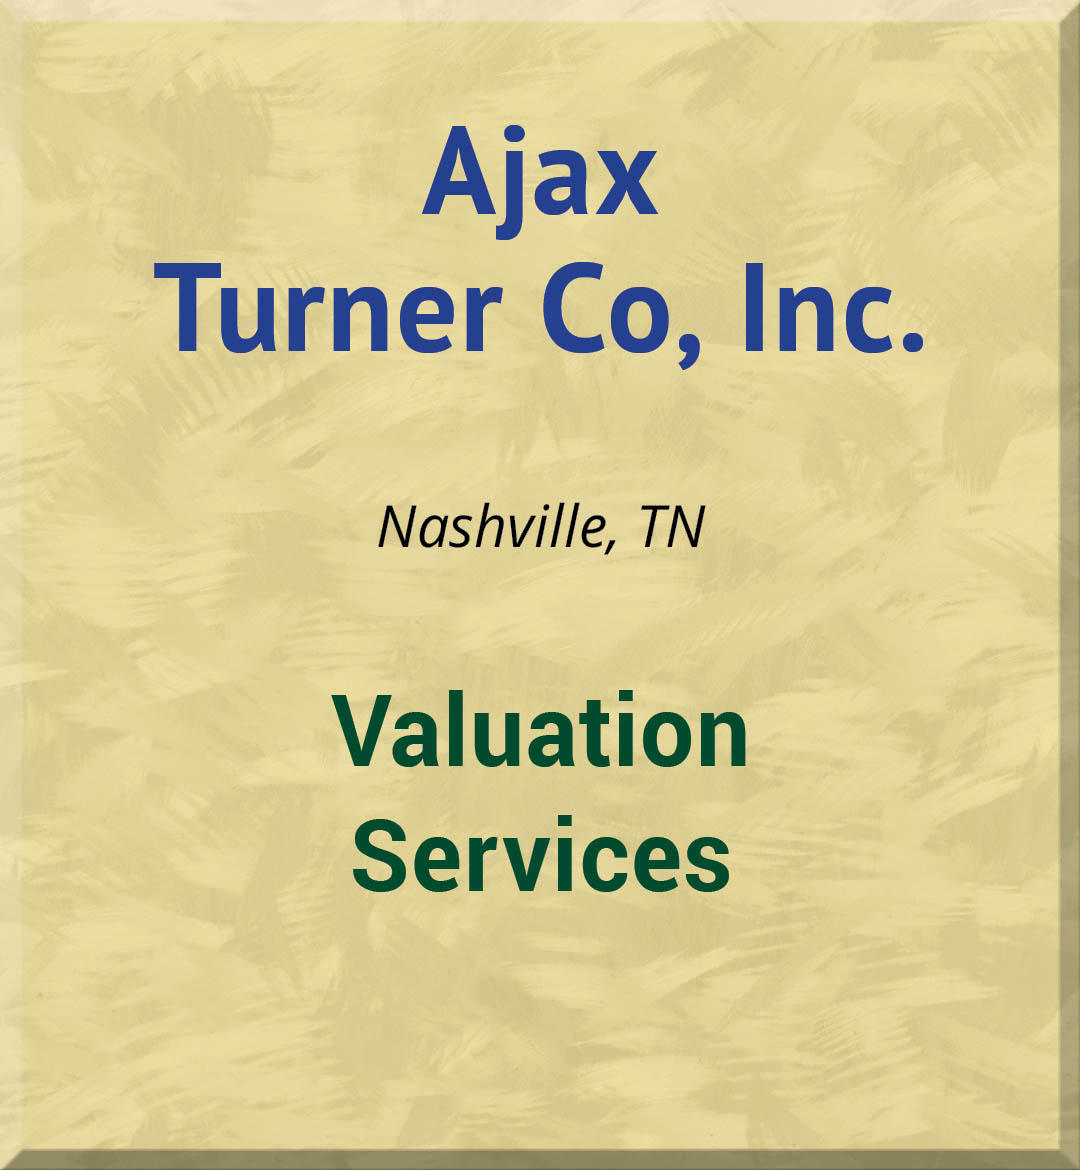 Ajax Turner Co, Inc.